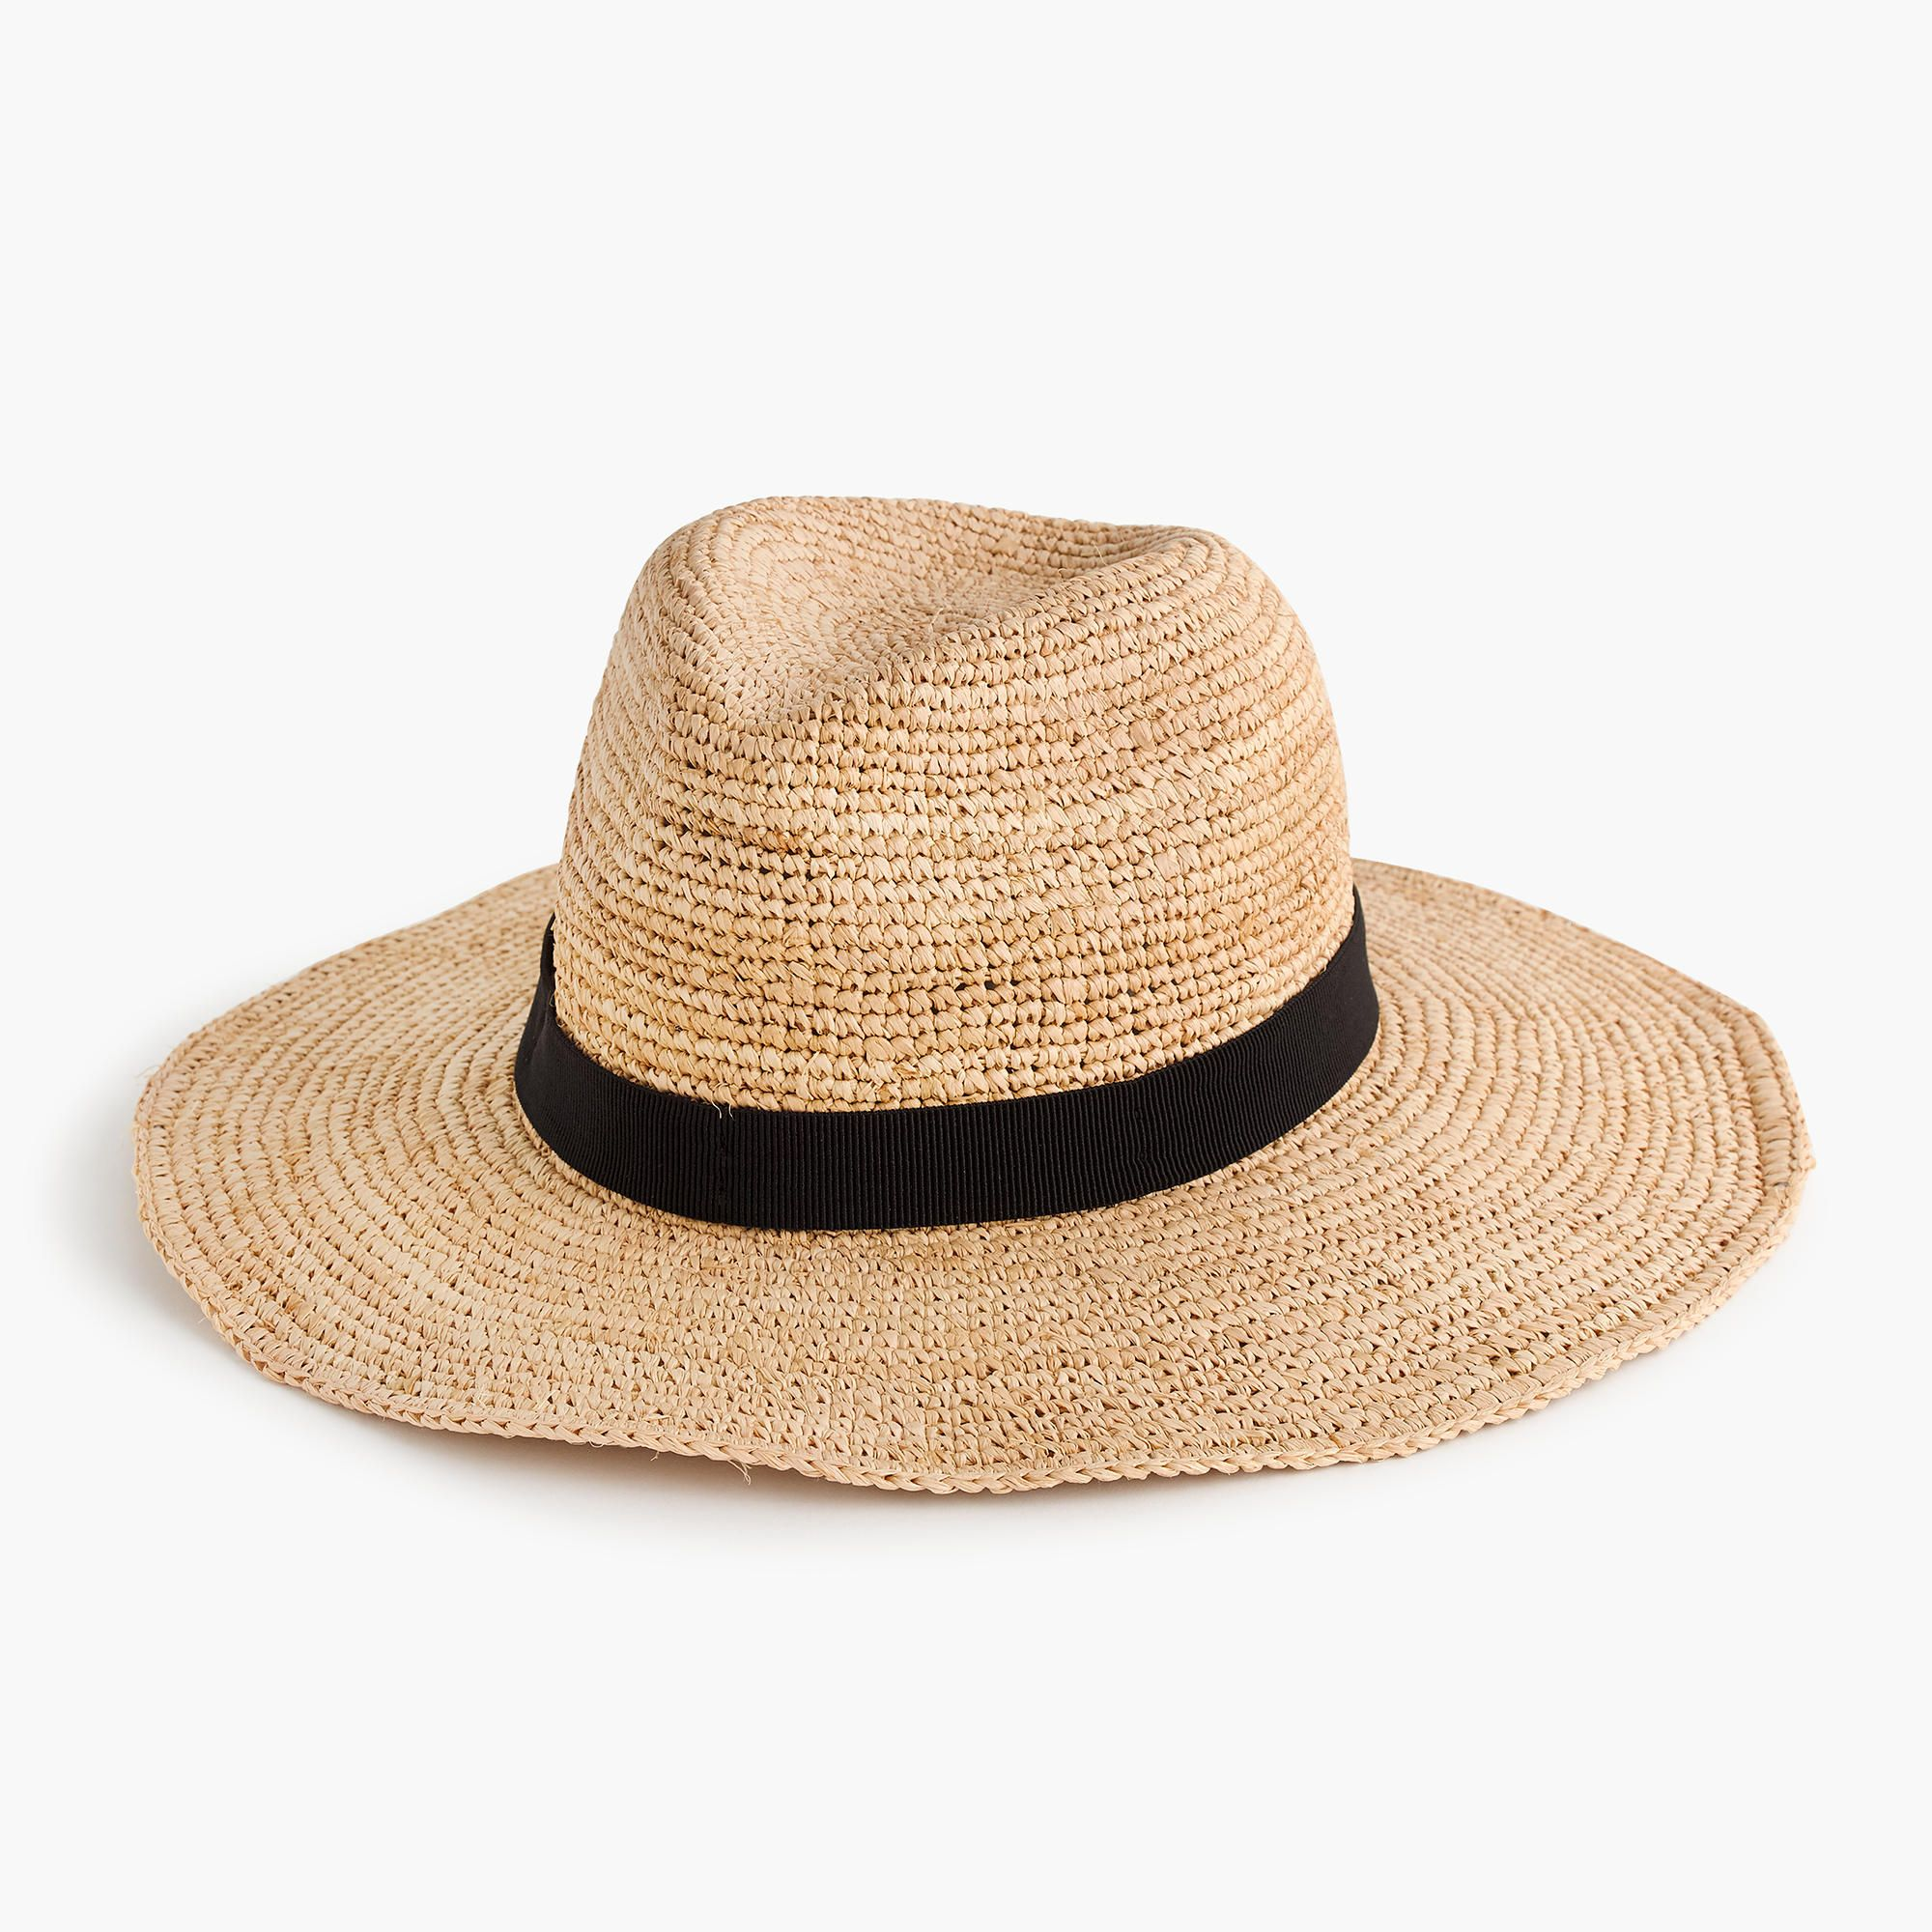 A packable straw hat is perfect for all of your warm-weather adventures.  Raffia. Import. f94e8d8c475